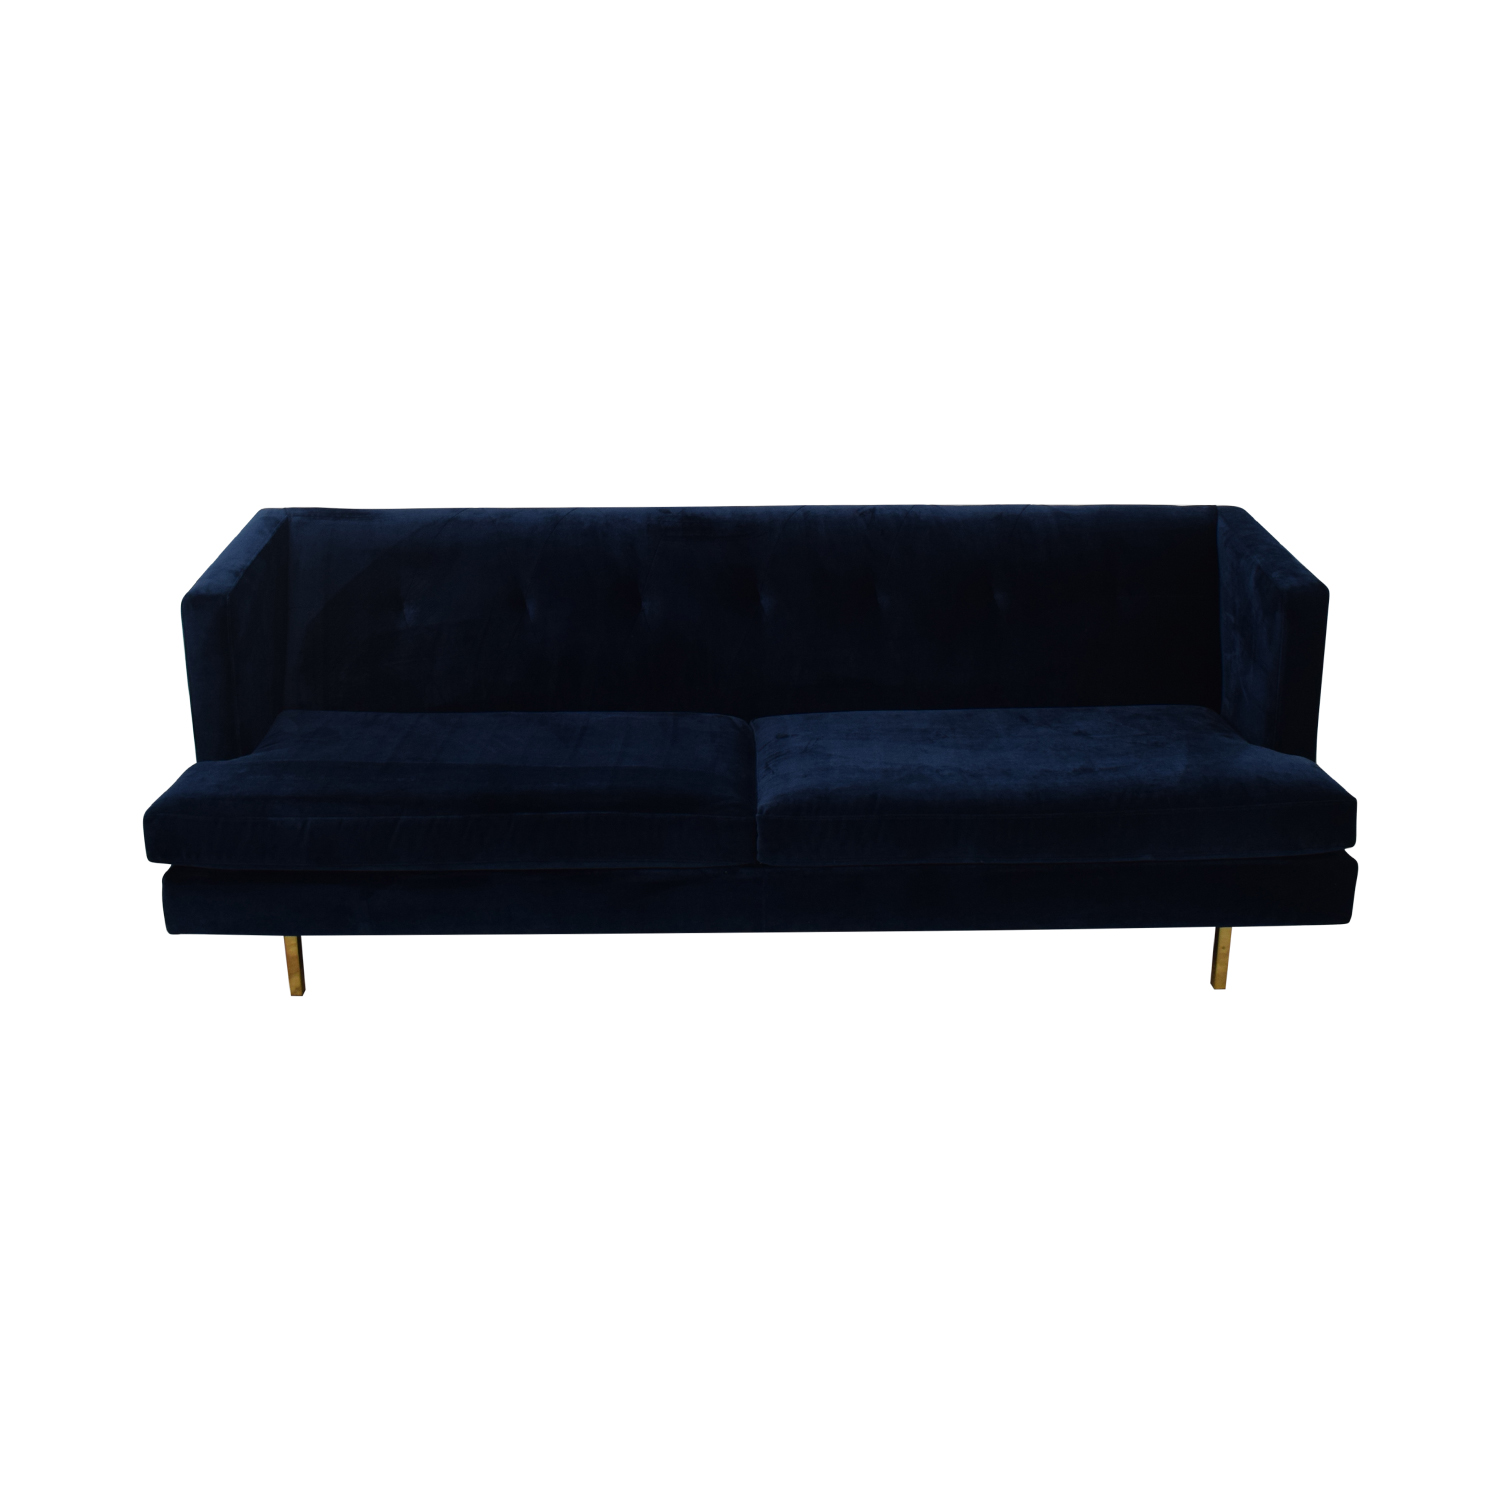 CB2 Avec Sofa with Brass Legs CB2